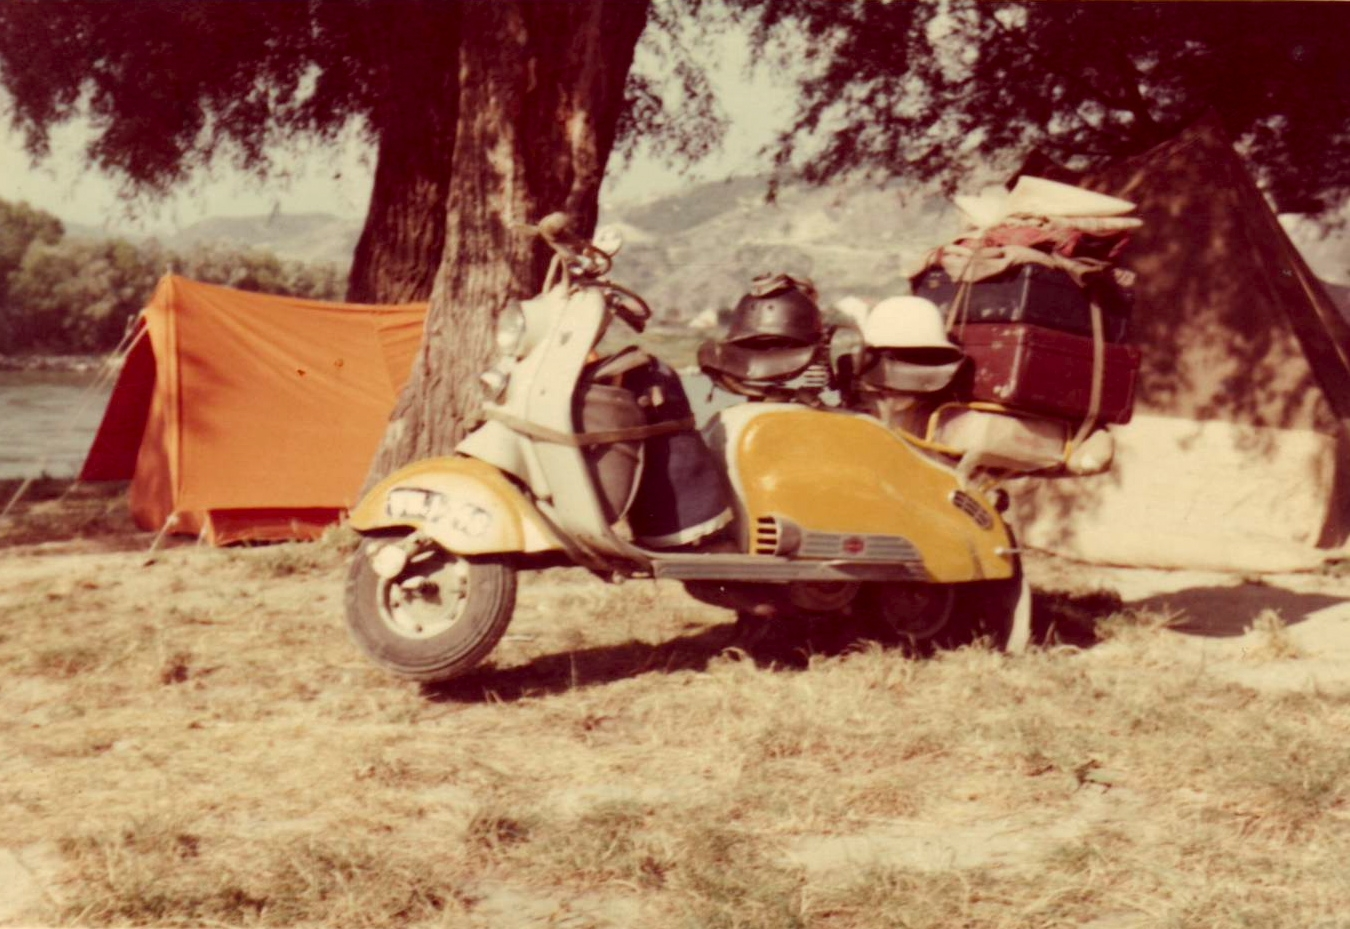 https://orvietoorbust.files.wordpress.com/2012/04/yellow-scooter-2.jpg